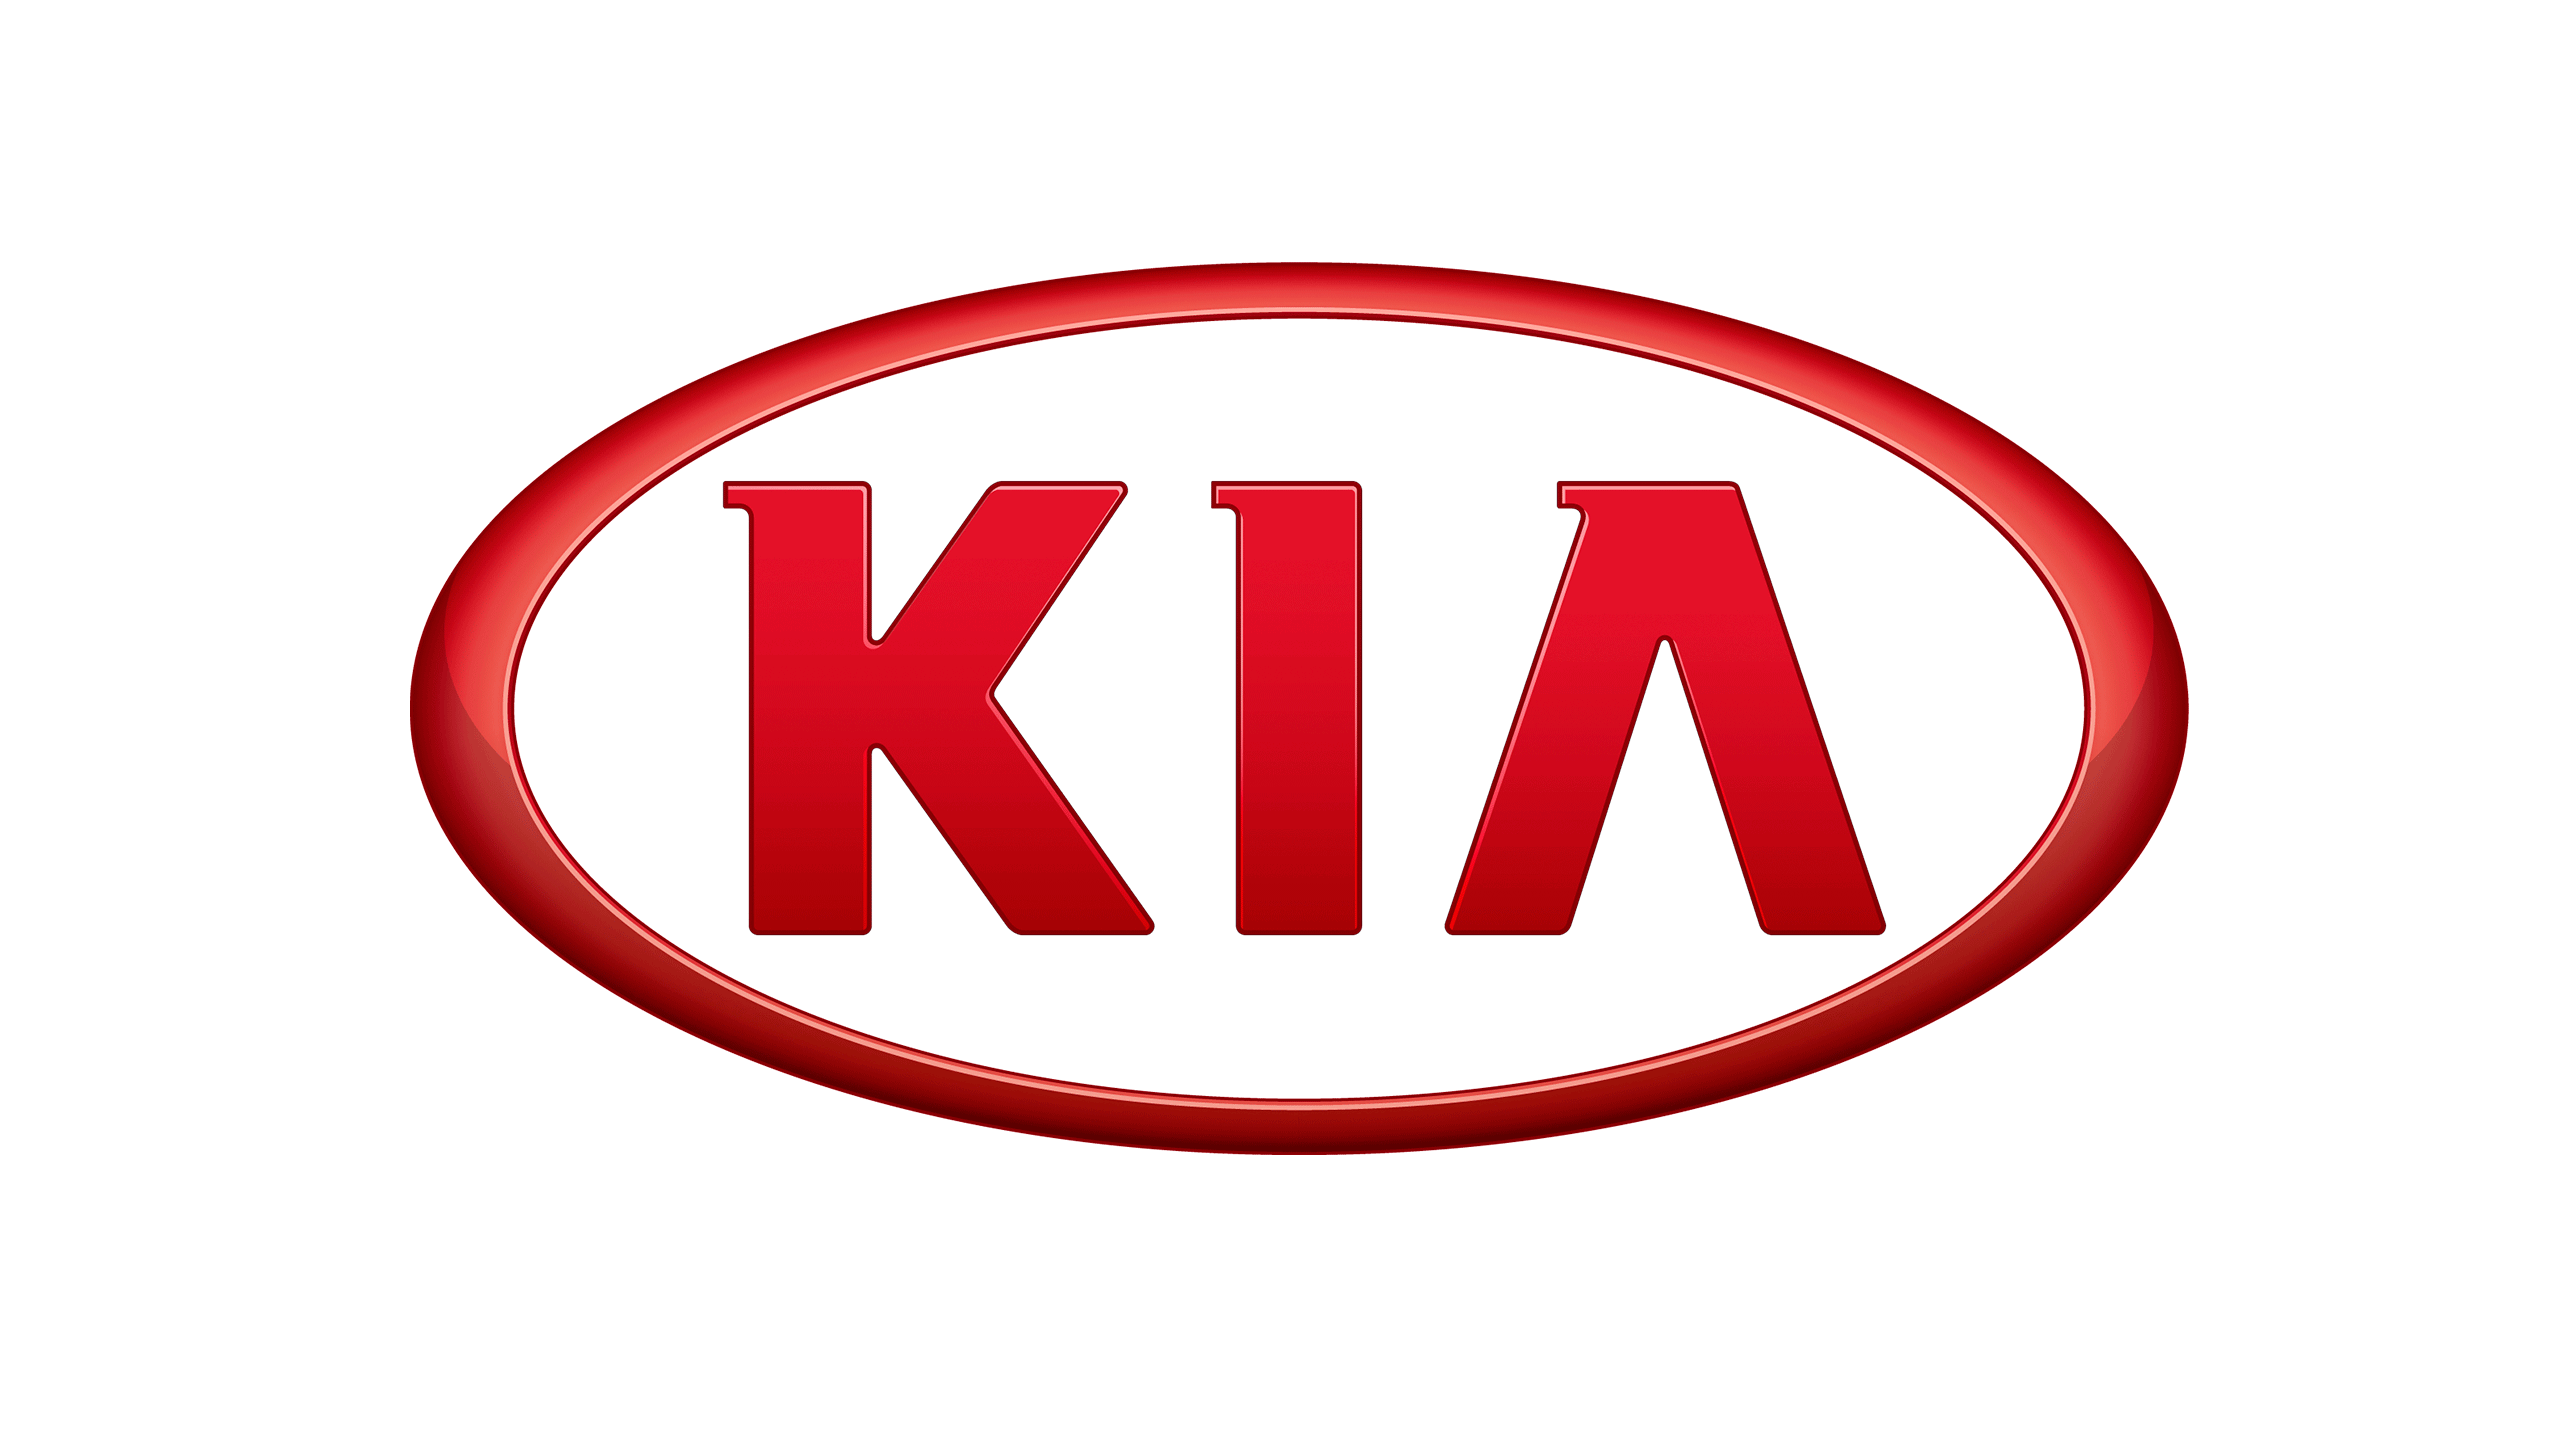 Car Logo Kia - Car Logo PNG